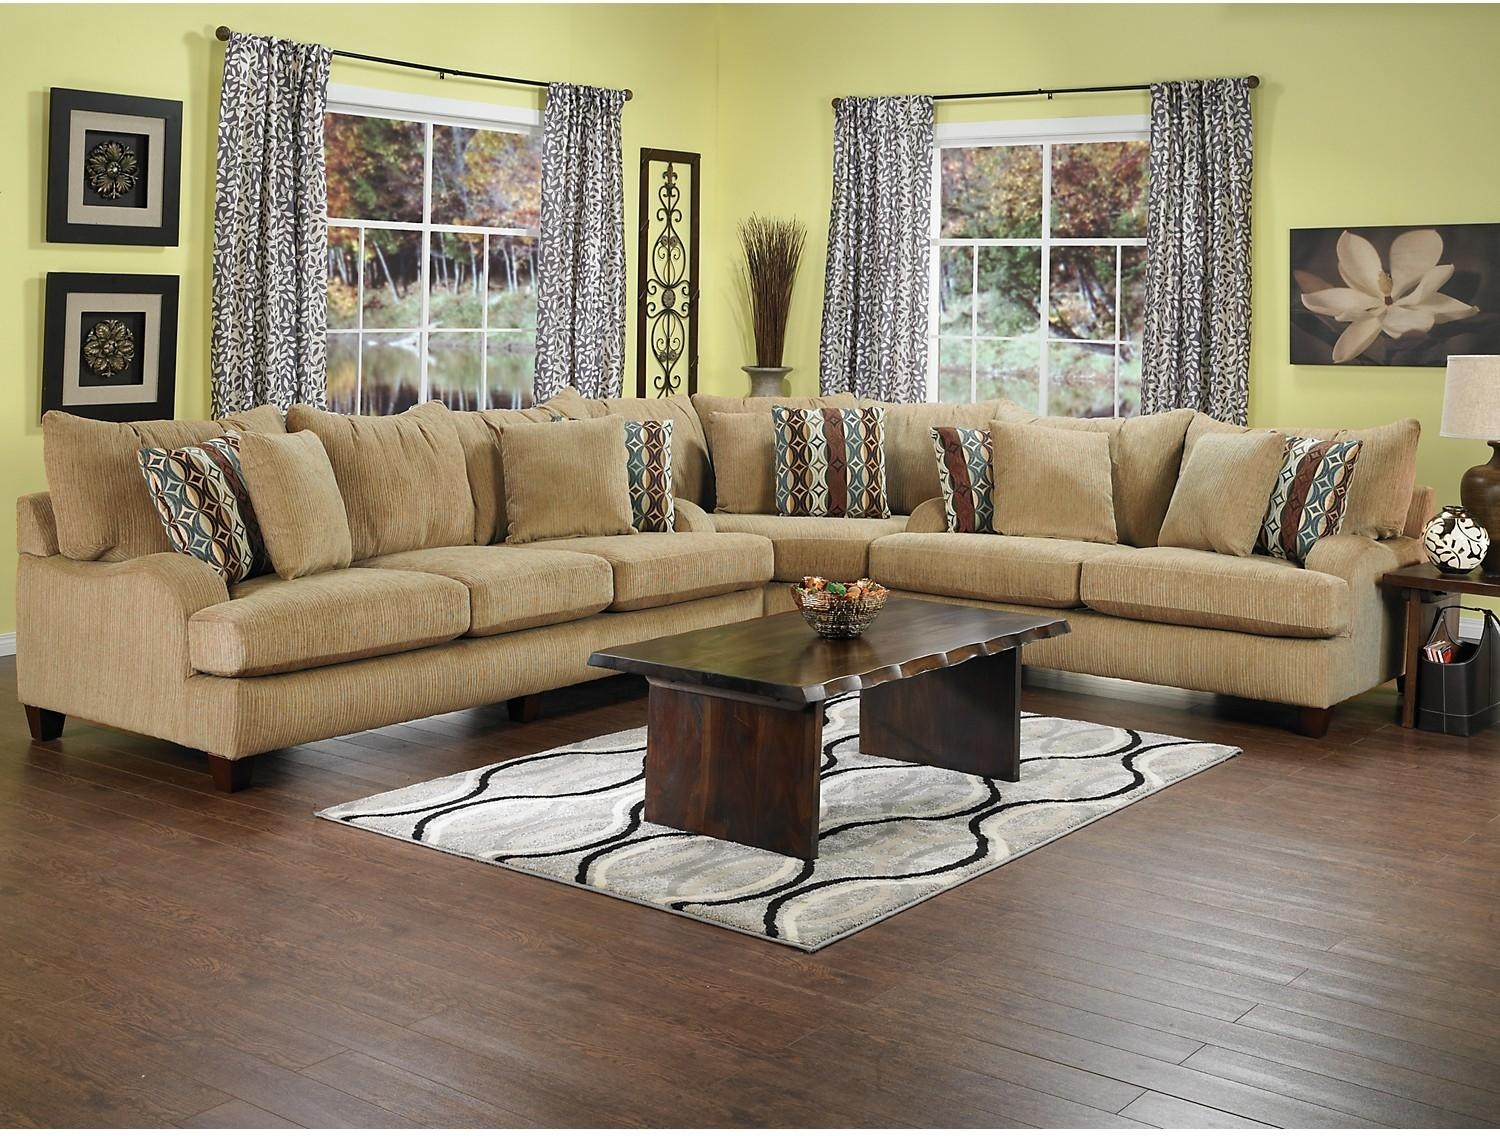 Chenille Sectional Living Room Furniture – Carameloffers Inside Chenille Sectional Sofas With Chaise (Image 3 of 20)